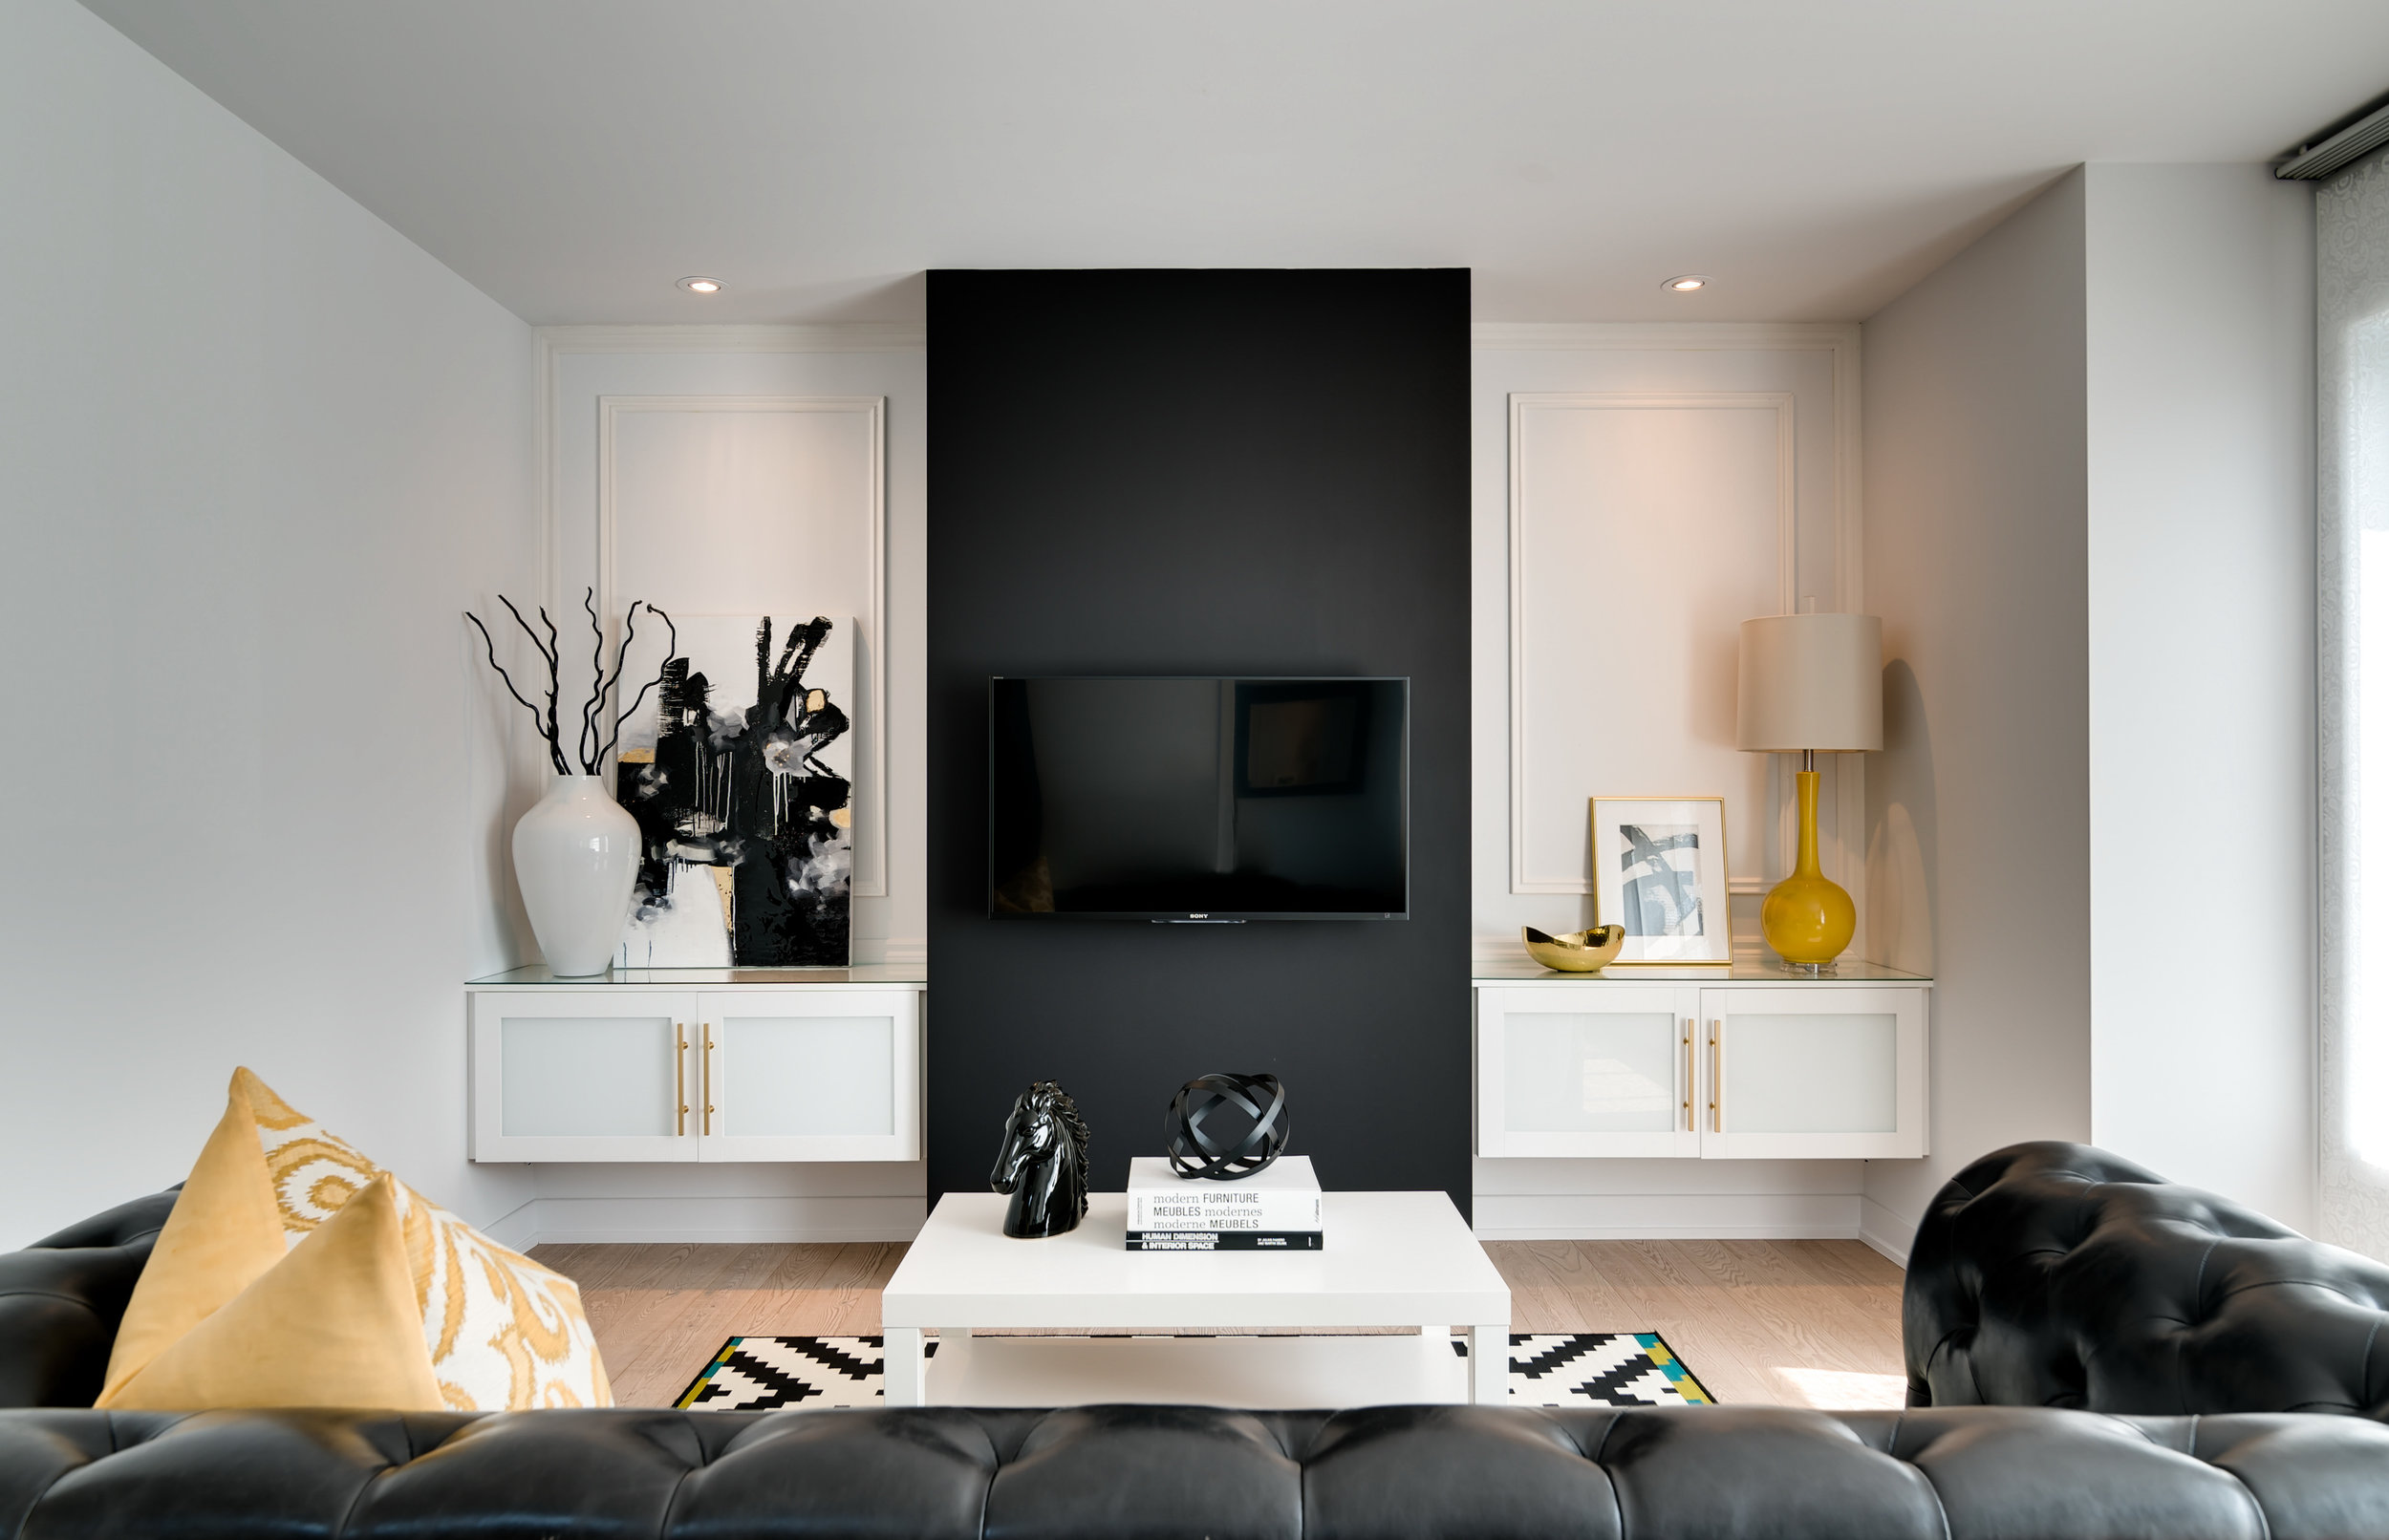 How to decorate around a TV. Hide it by painting the wall behind it a dark color.Come see other ideas and inspiration in this blog post!